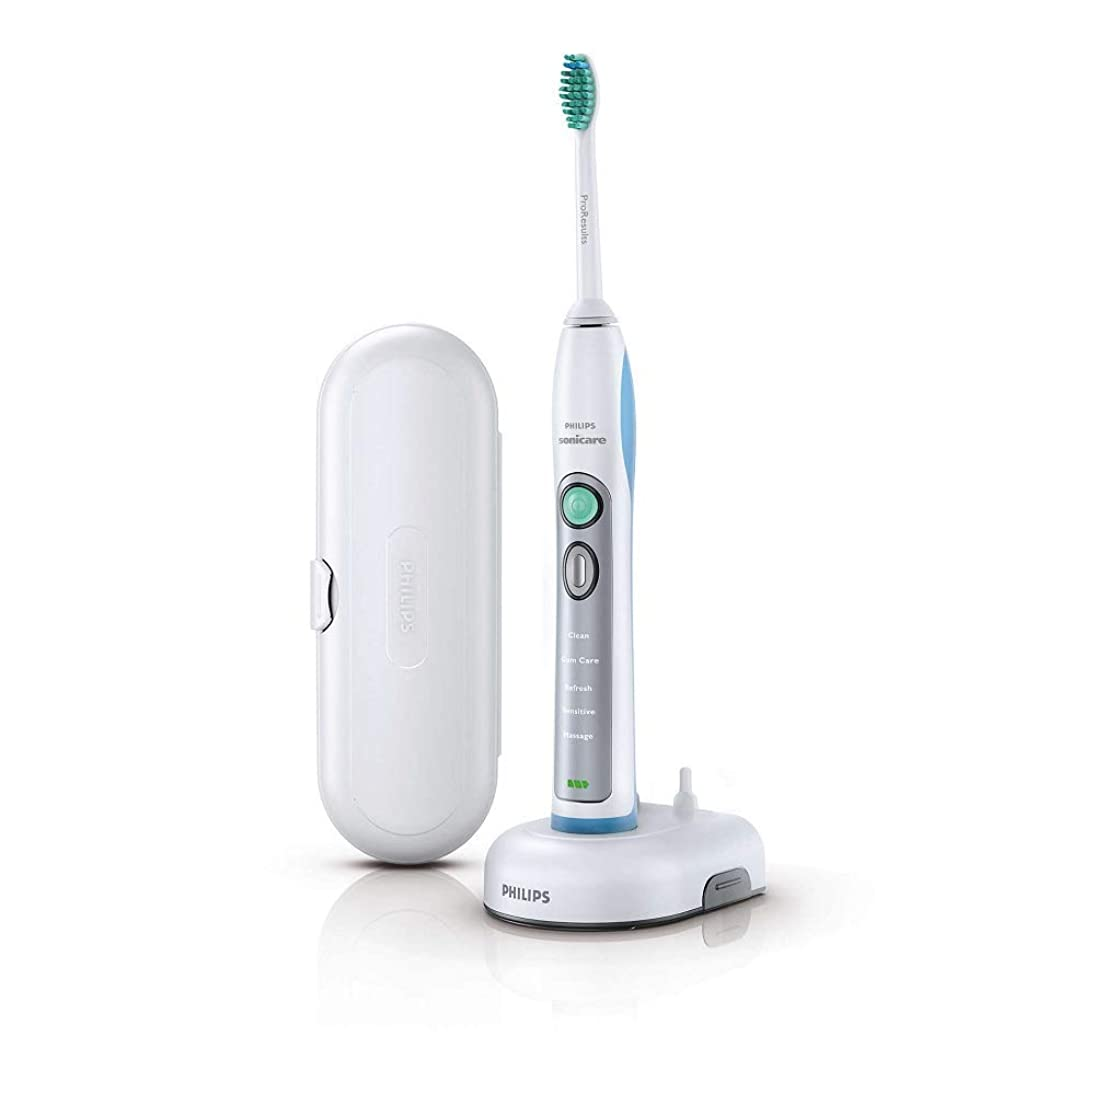 コーンウォール成分チョークPhilips HX6921 Sonicare FlexCare+ Electric Toothbrush Free Volt White & Sky Blue [並行輸入品]